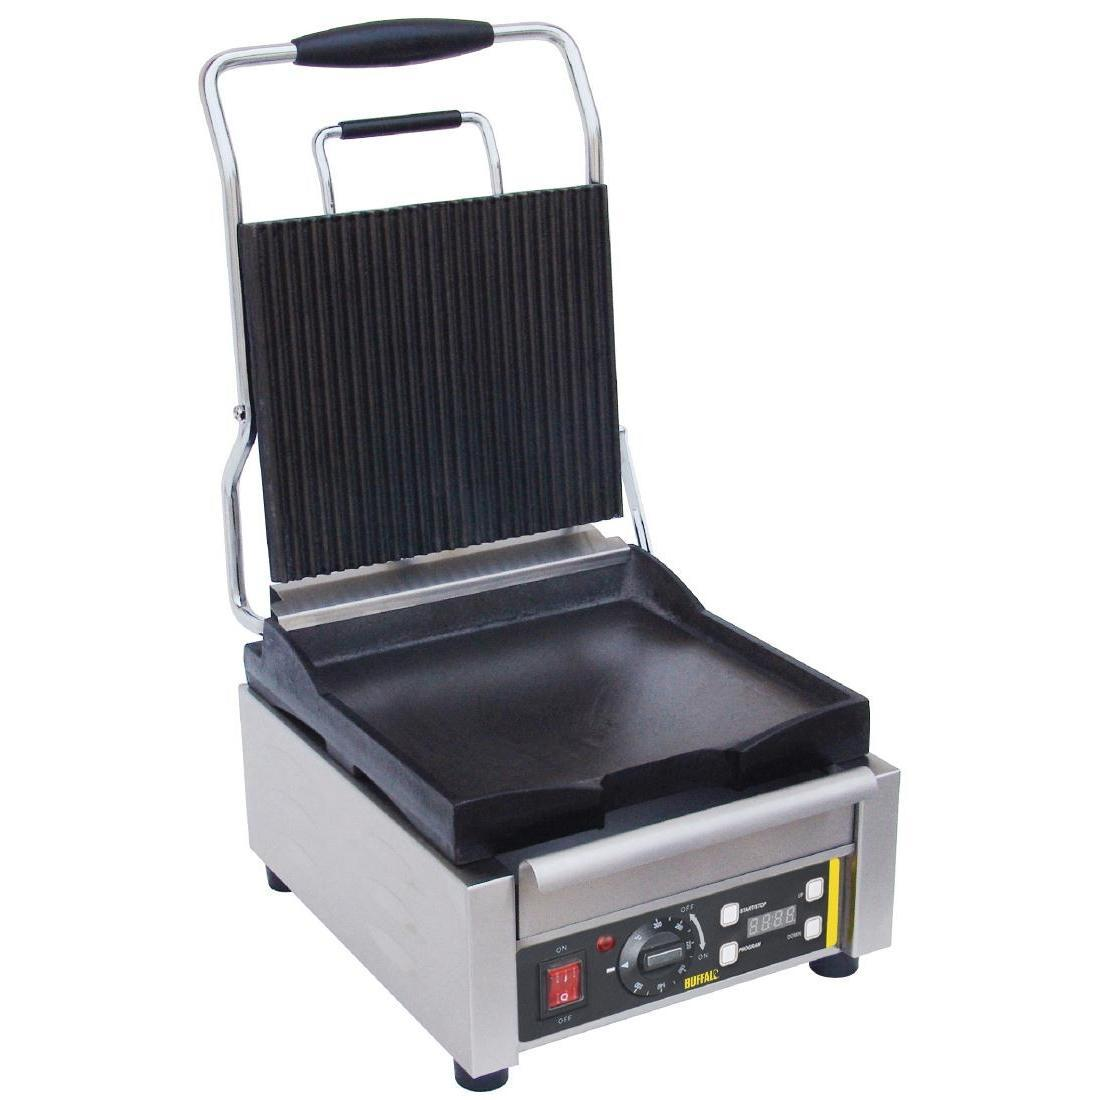 Buffalo Single Contact Grill Ribbed Top - L511